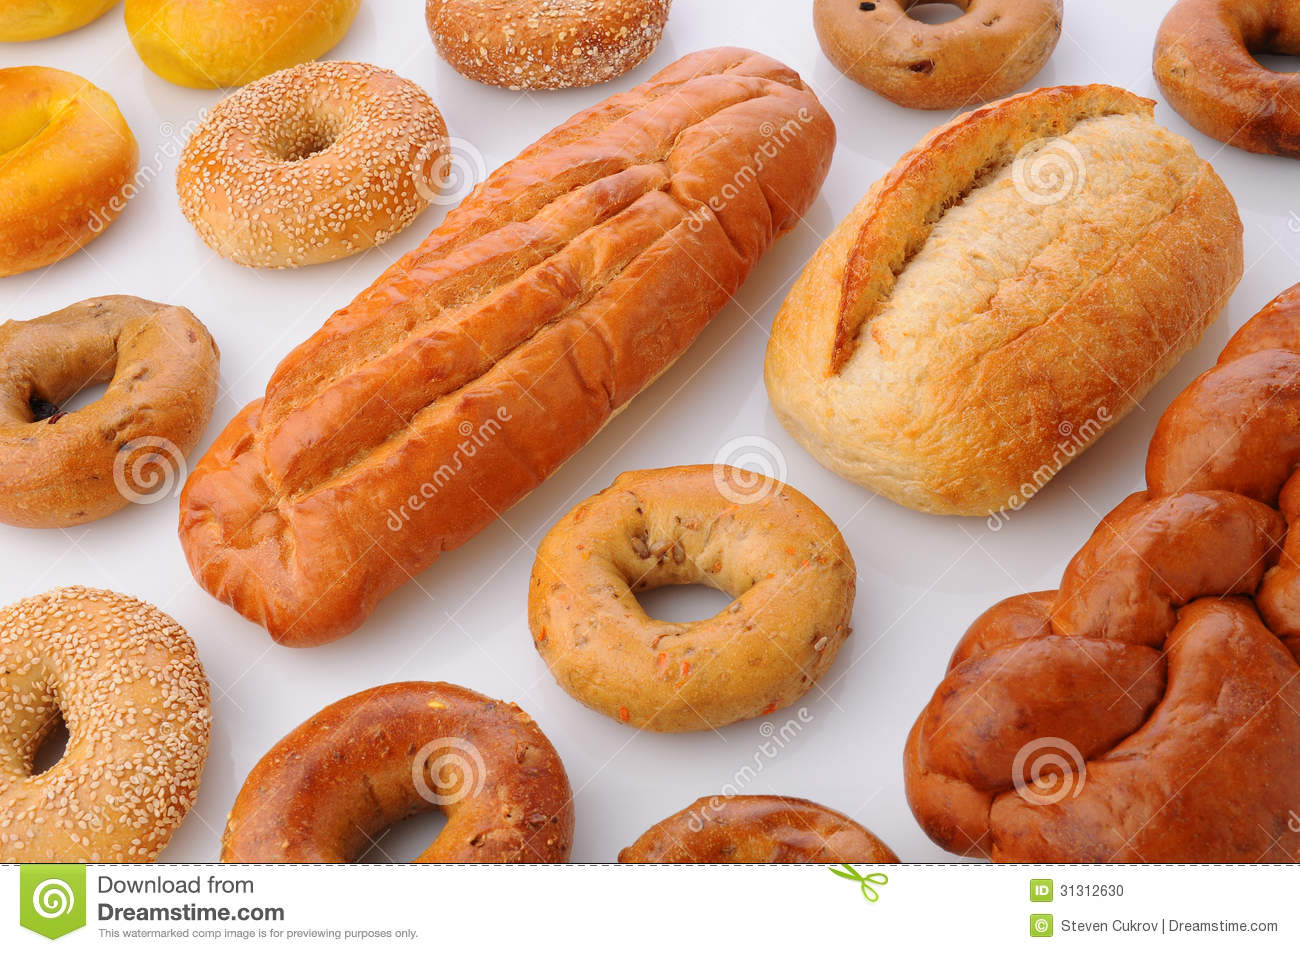 Bagels i chleby